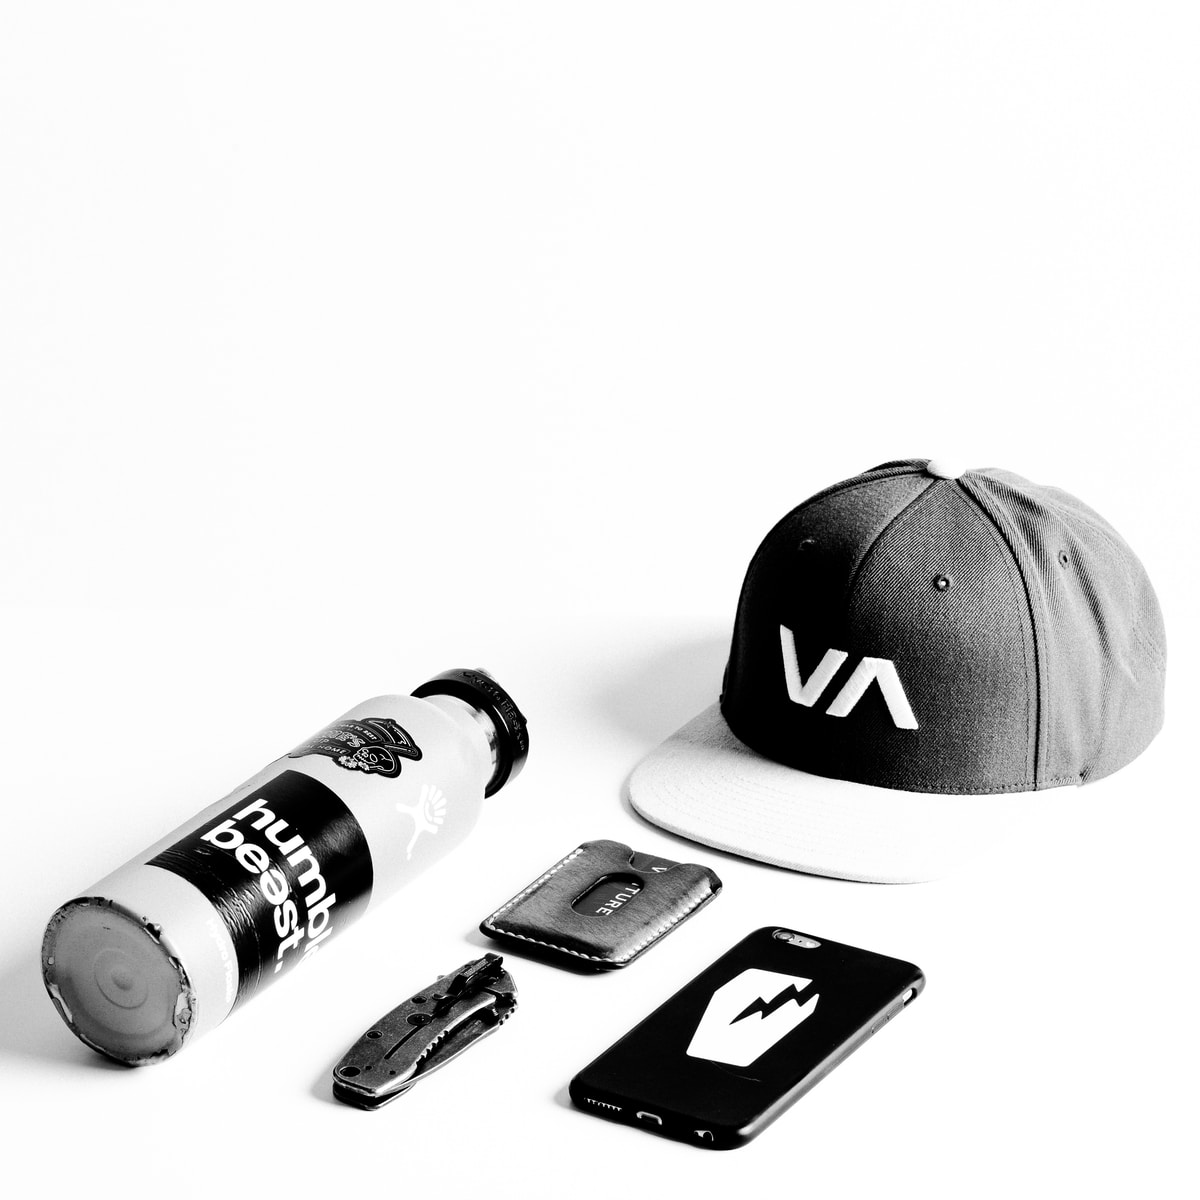 Black and white photograph of a hat, a cellphone, a money clip, a pocket knife and a water bottle.